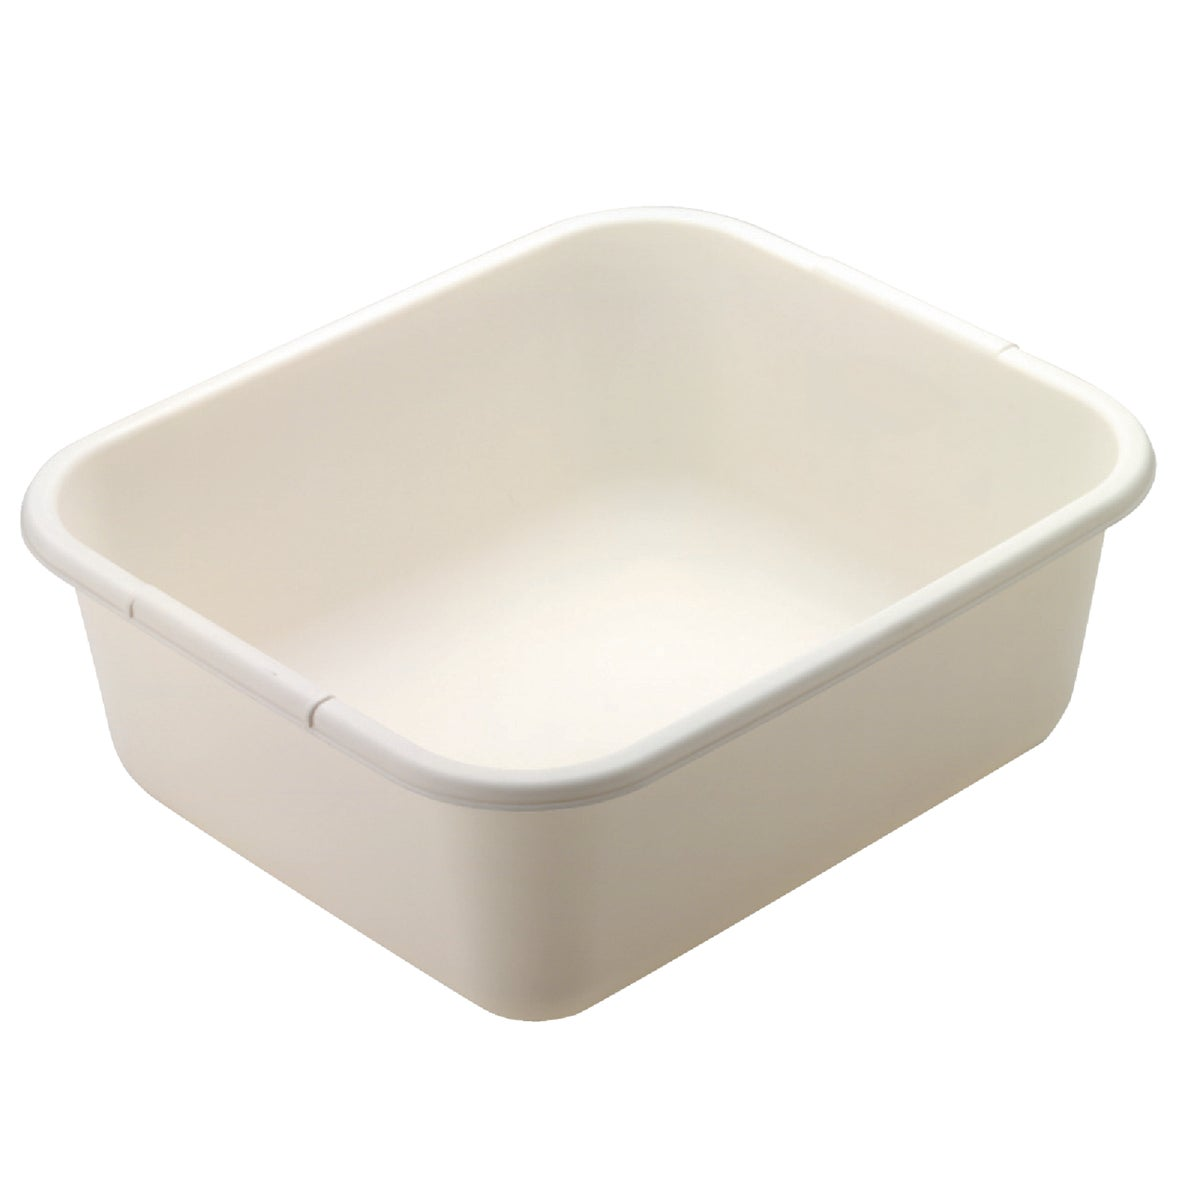 BISQUE DISHPAN